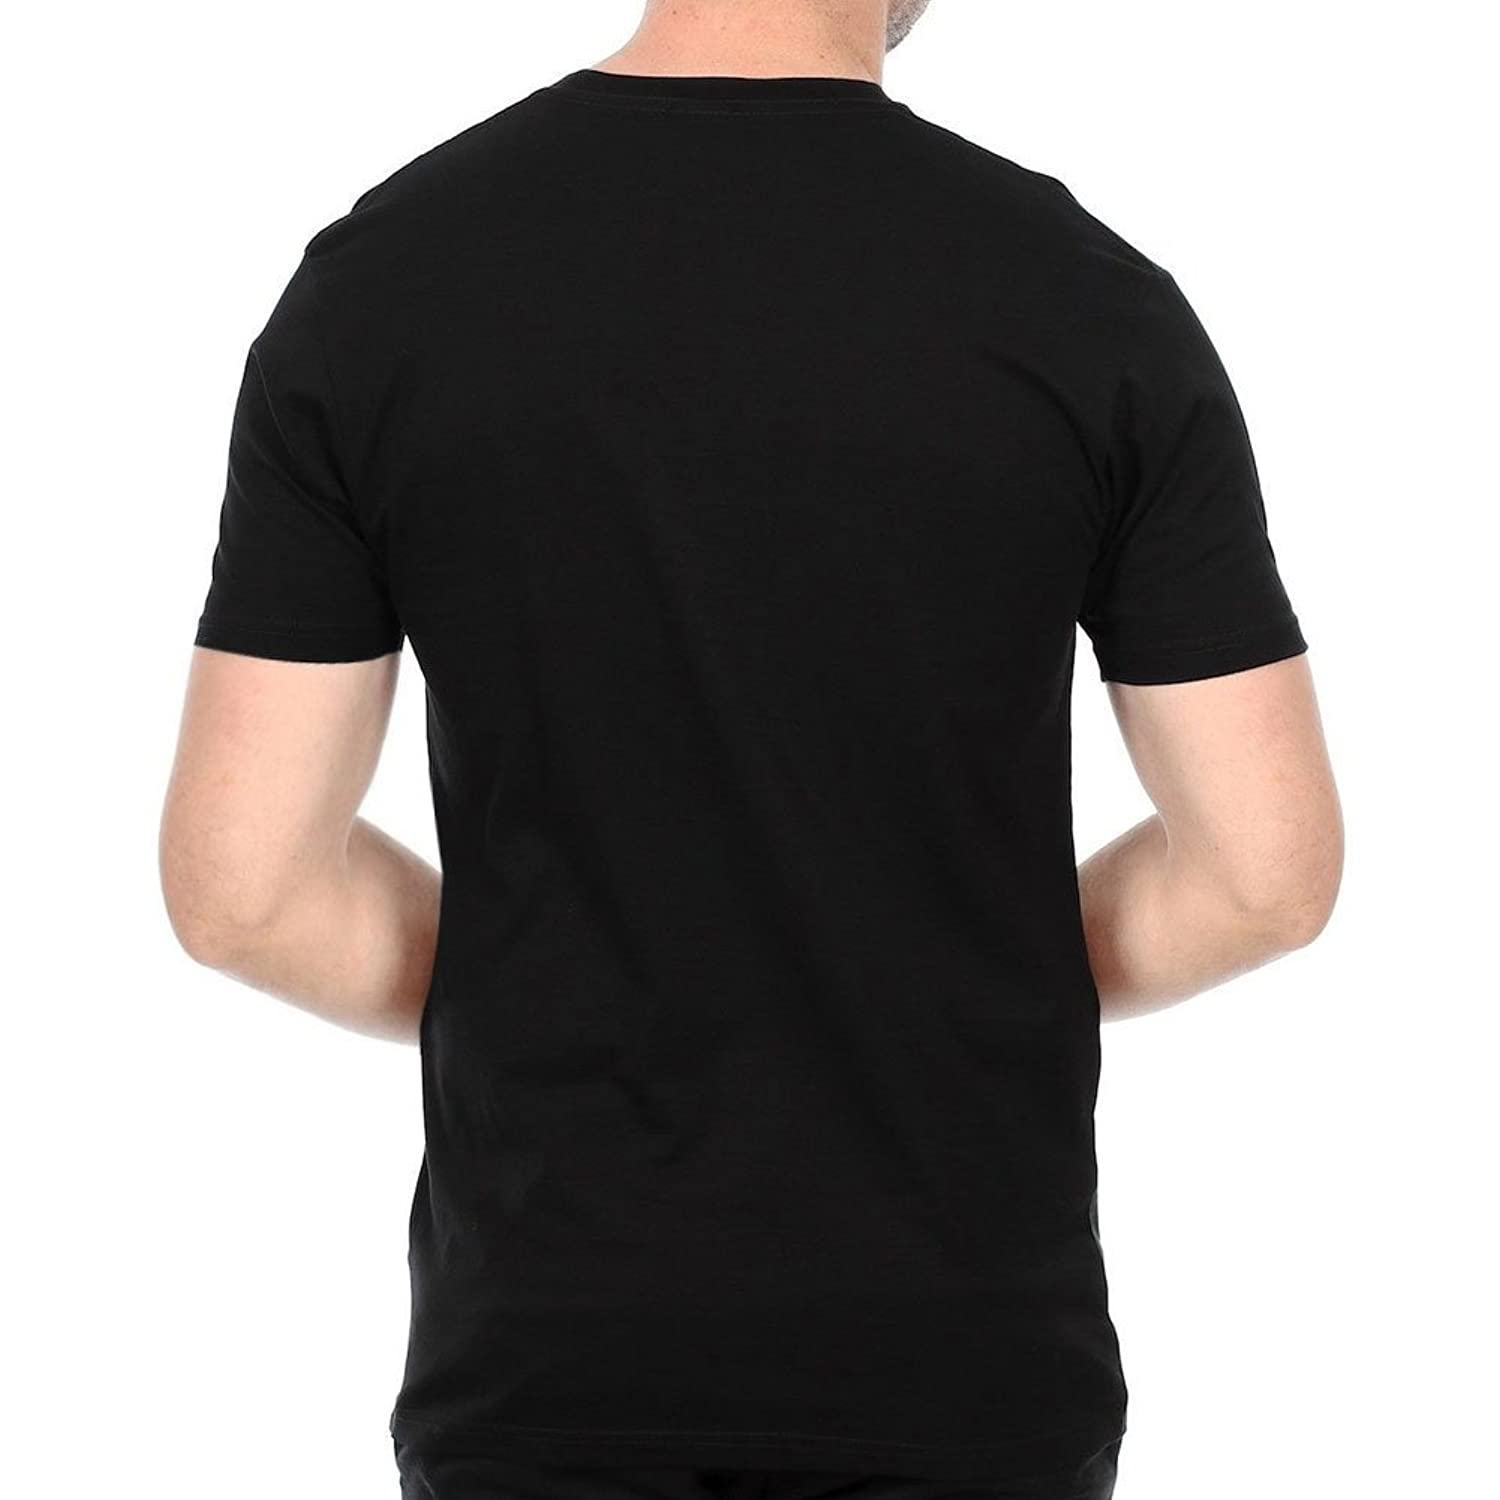 LRG Men's Cold Blooded Chillers SS T Shirt Black 2XL